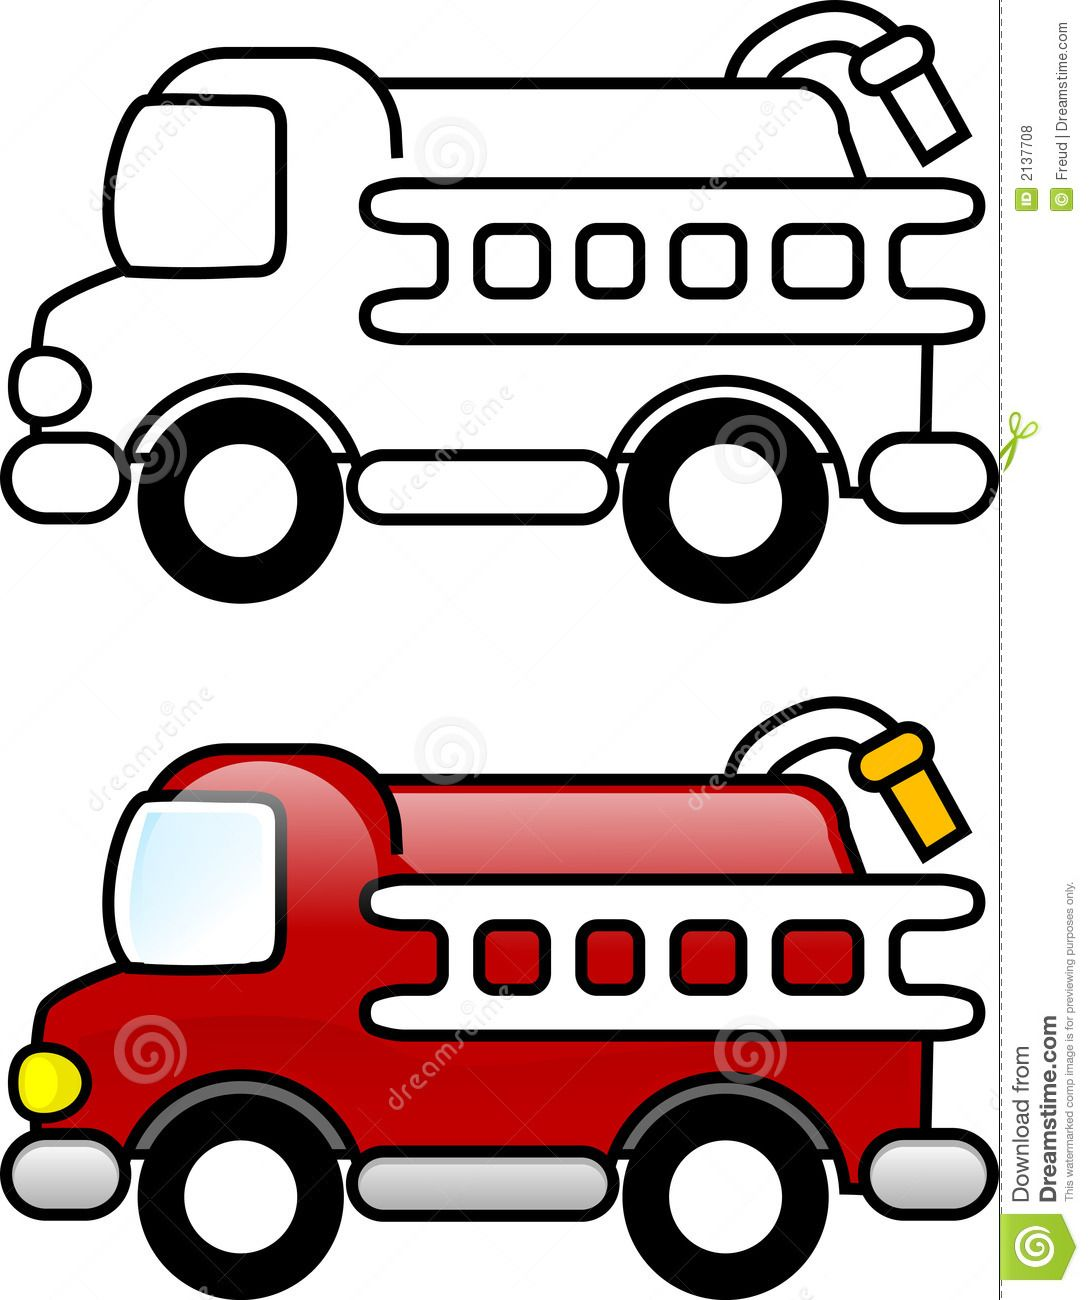 Preschool Fire Truck Coloring Pages Fire Truck Drawing Coloring